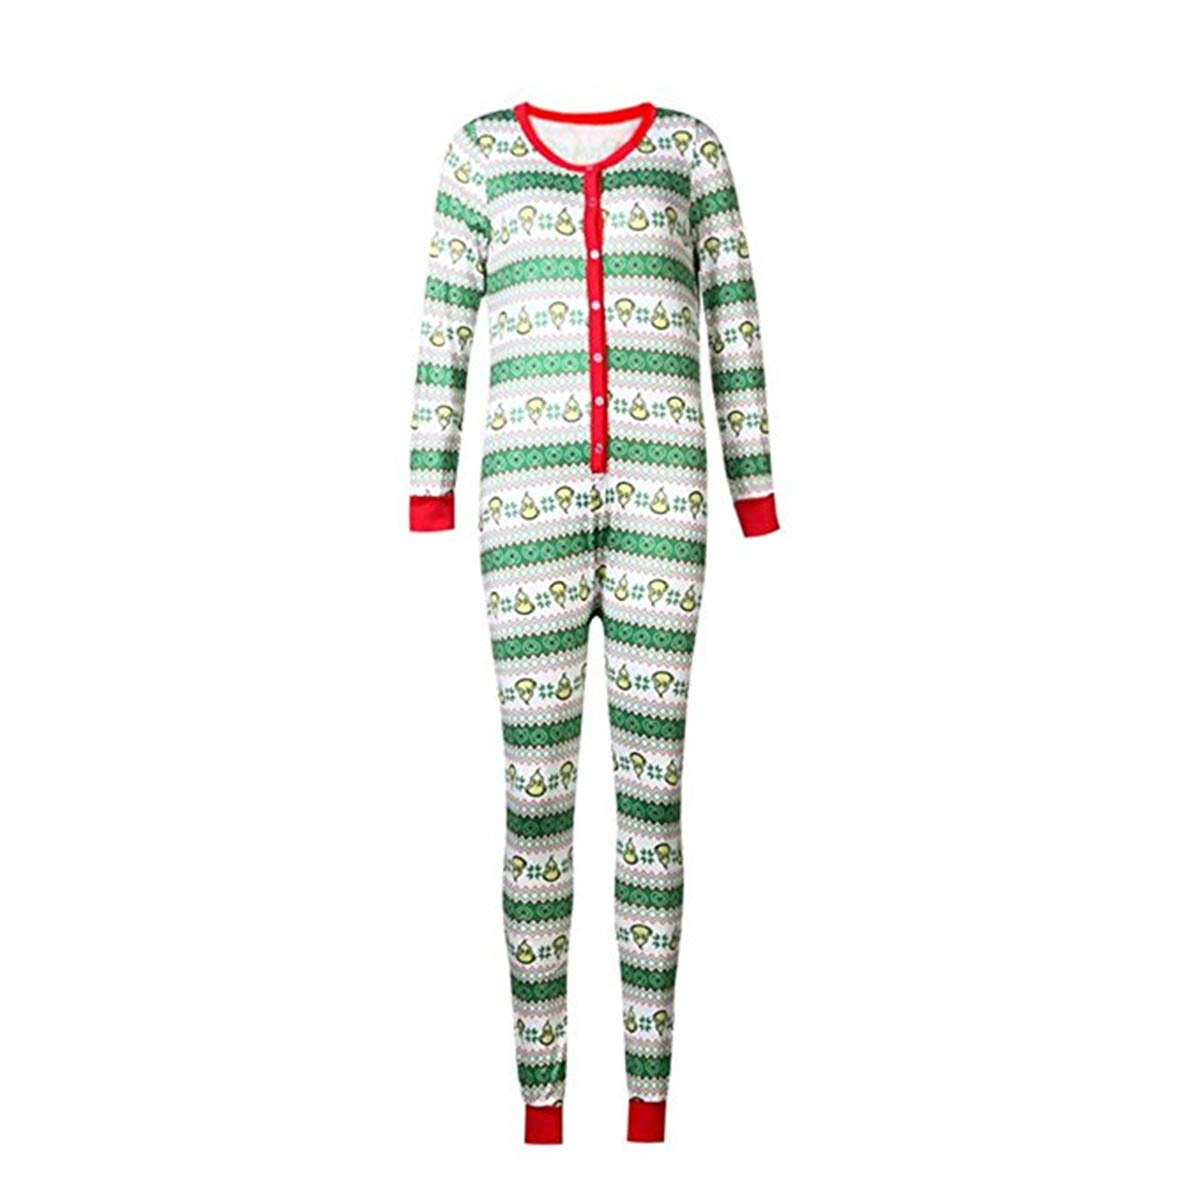 ... Family Matching Christmas Pajamas Set Geometric Patterned PJs Romper ... 0c4018310